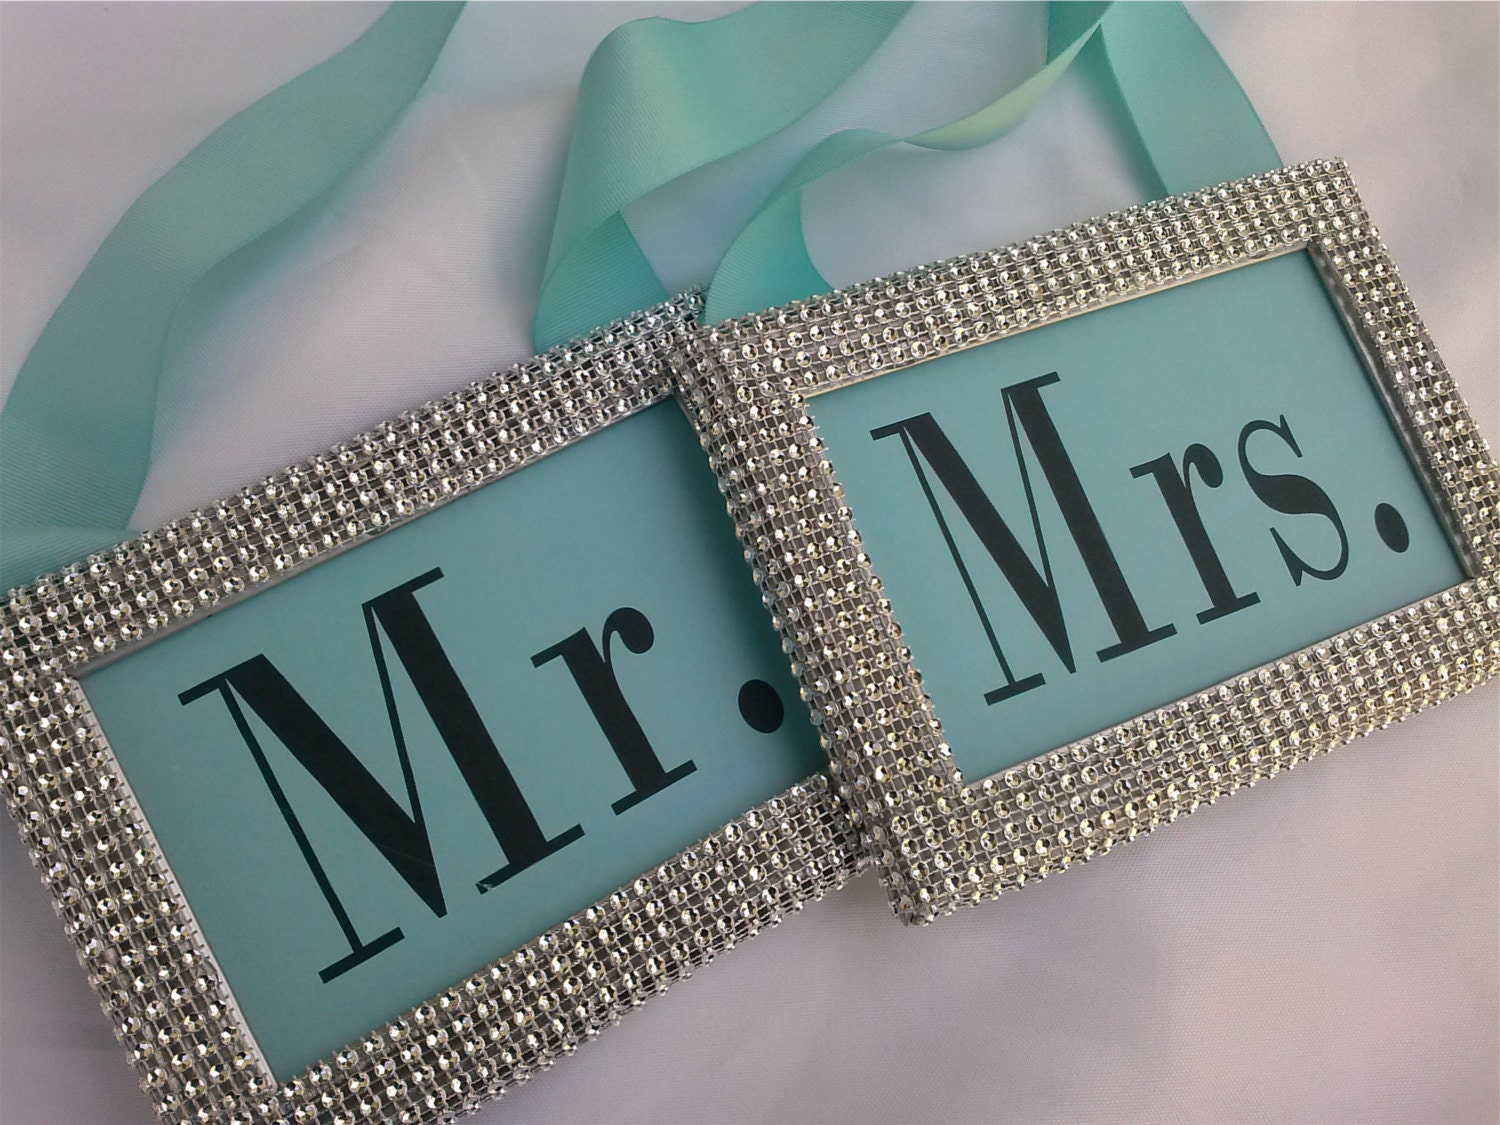 Sweetheart Table Signs - Tiffany & Co. Inspired Wedding Signs - Tiffany Wedding Signs